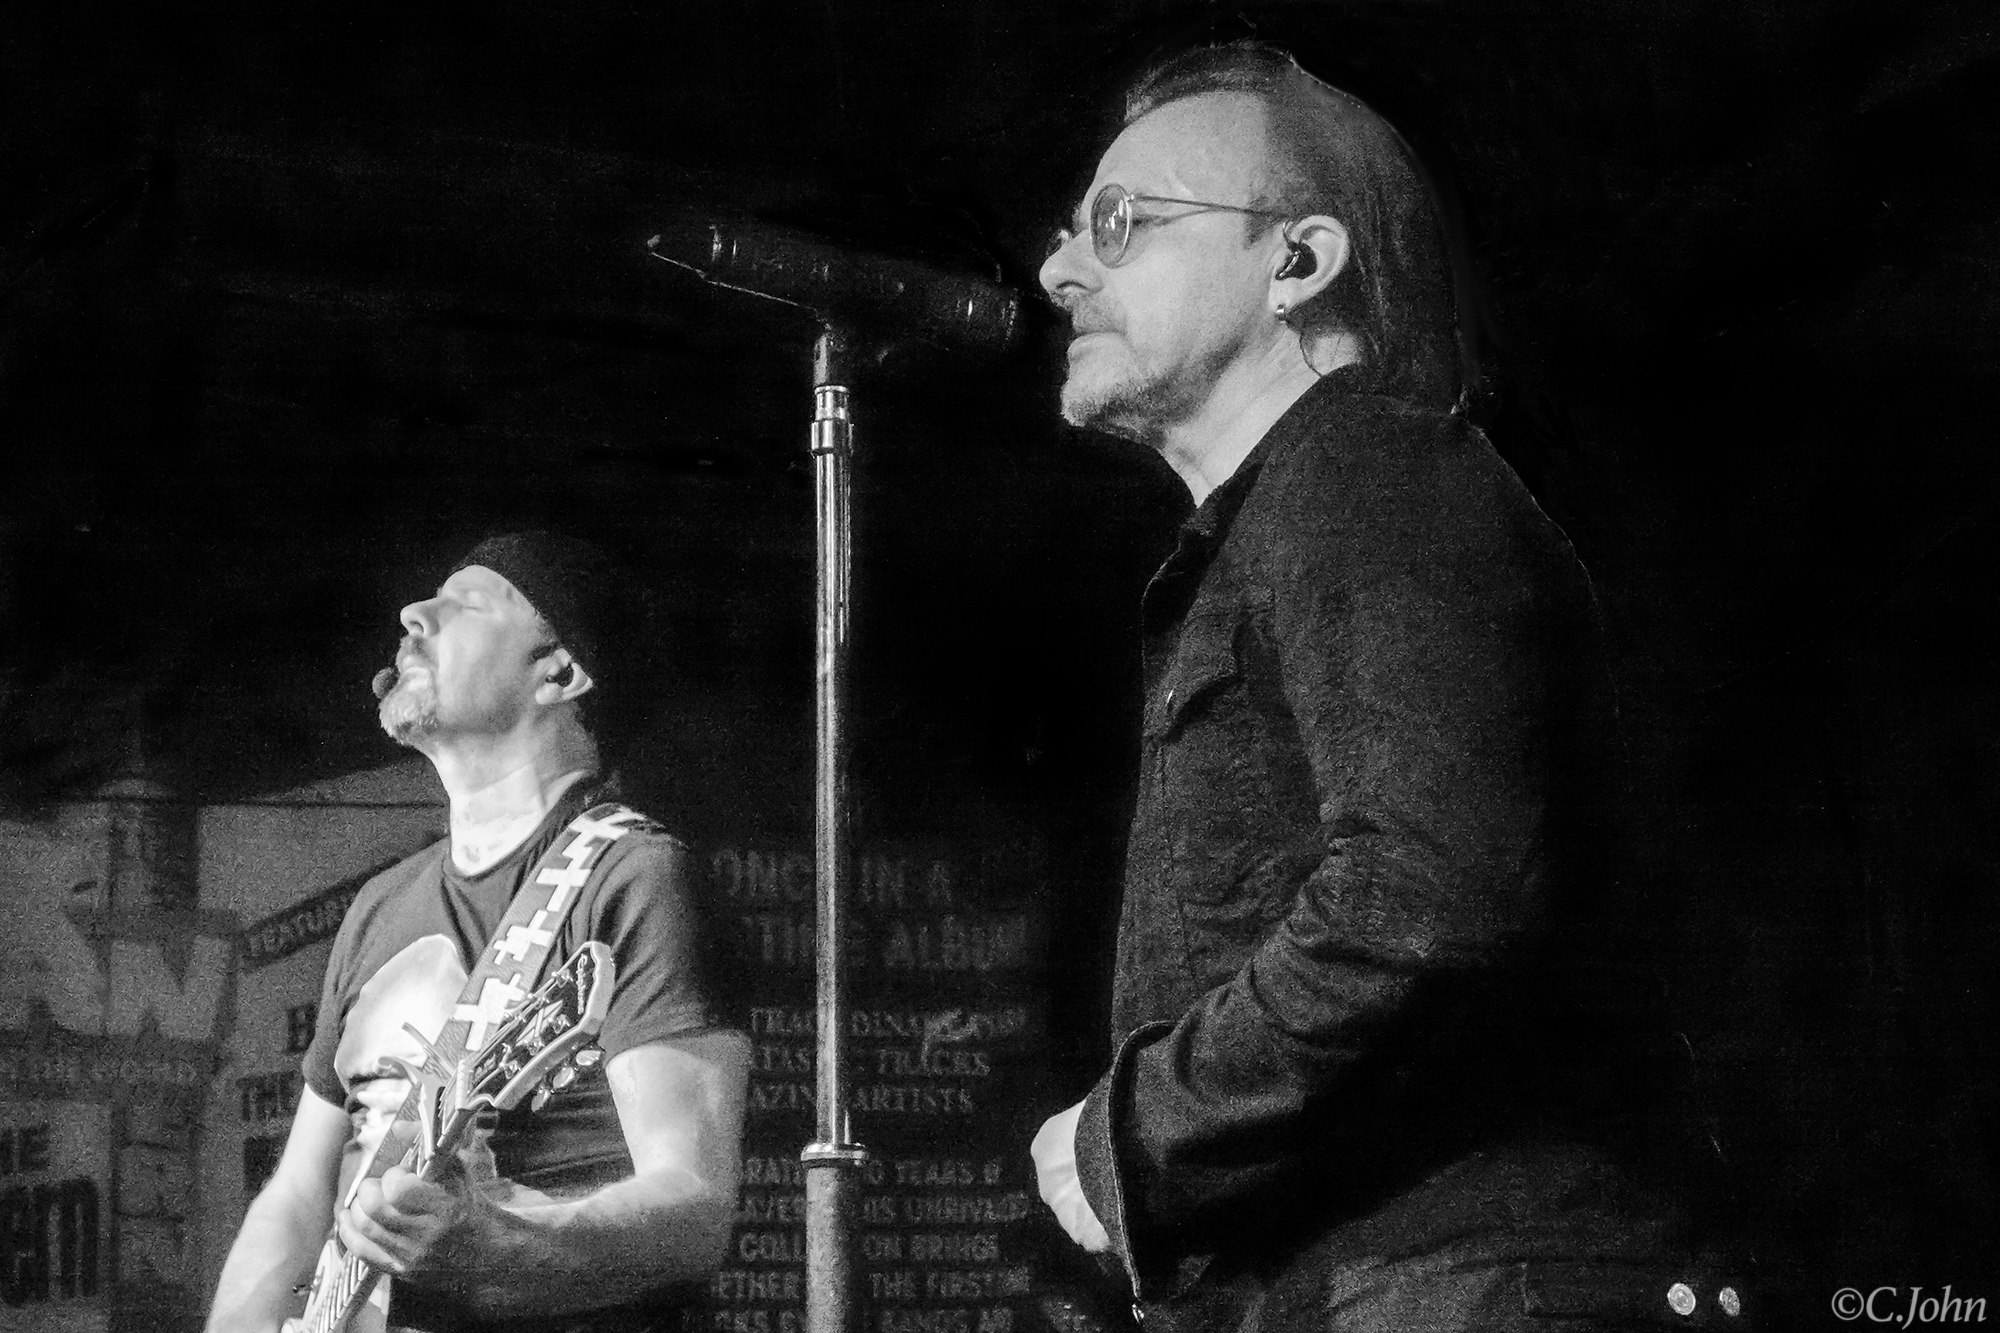 The atmosphere at the Cavern Club is second to none - this is a U2 fan meet not to be missed.